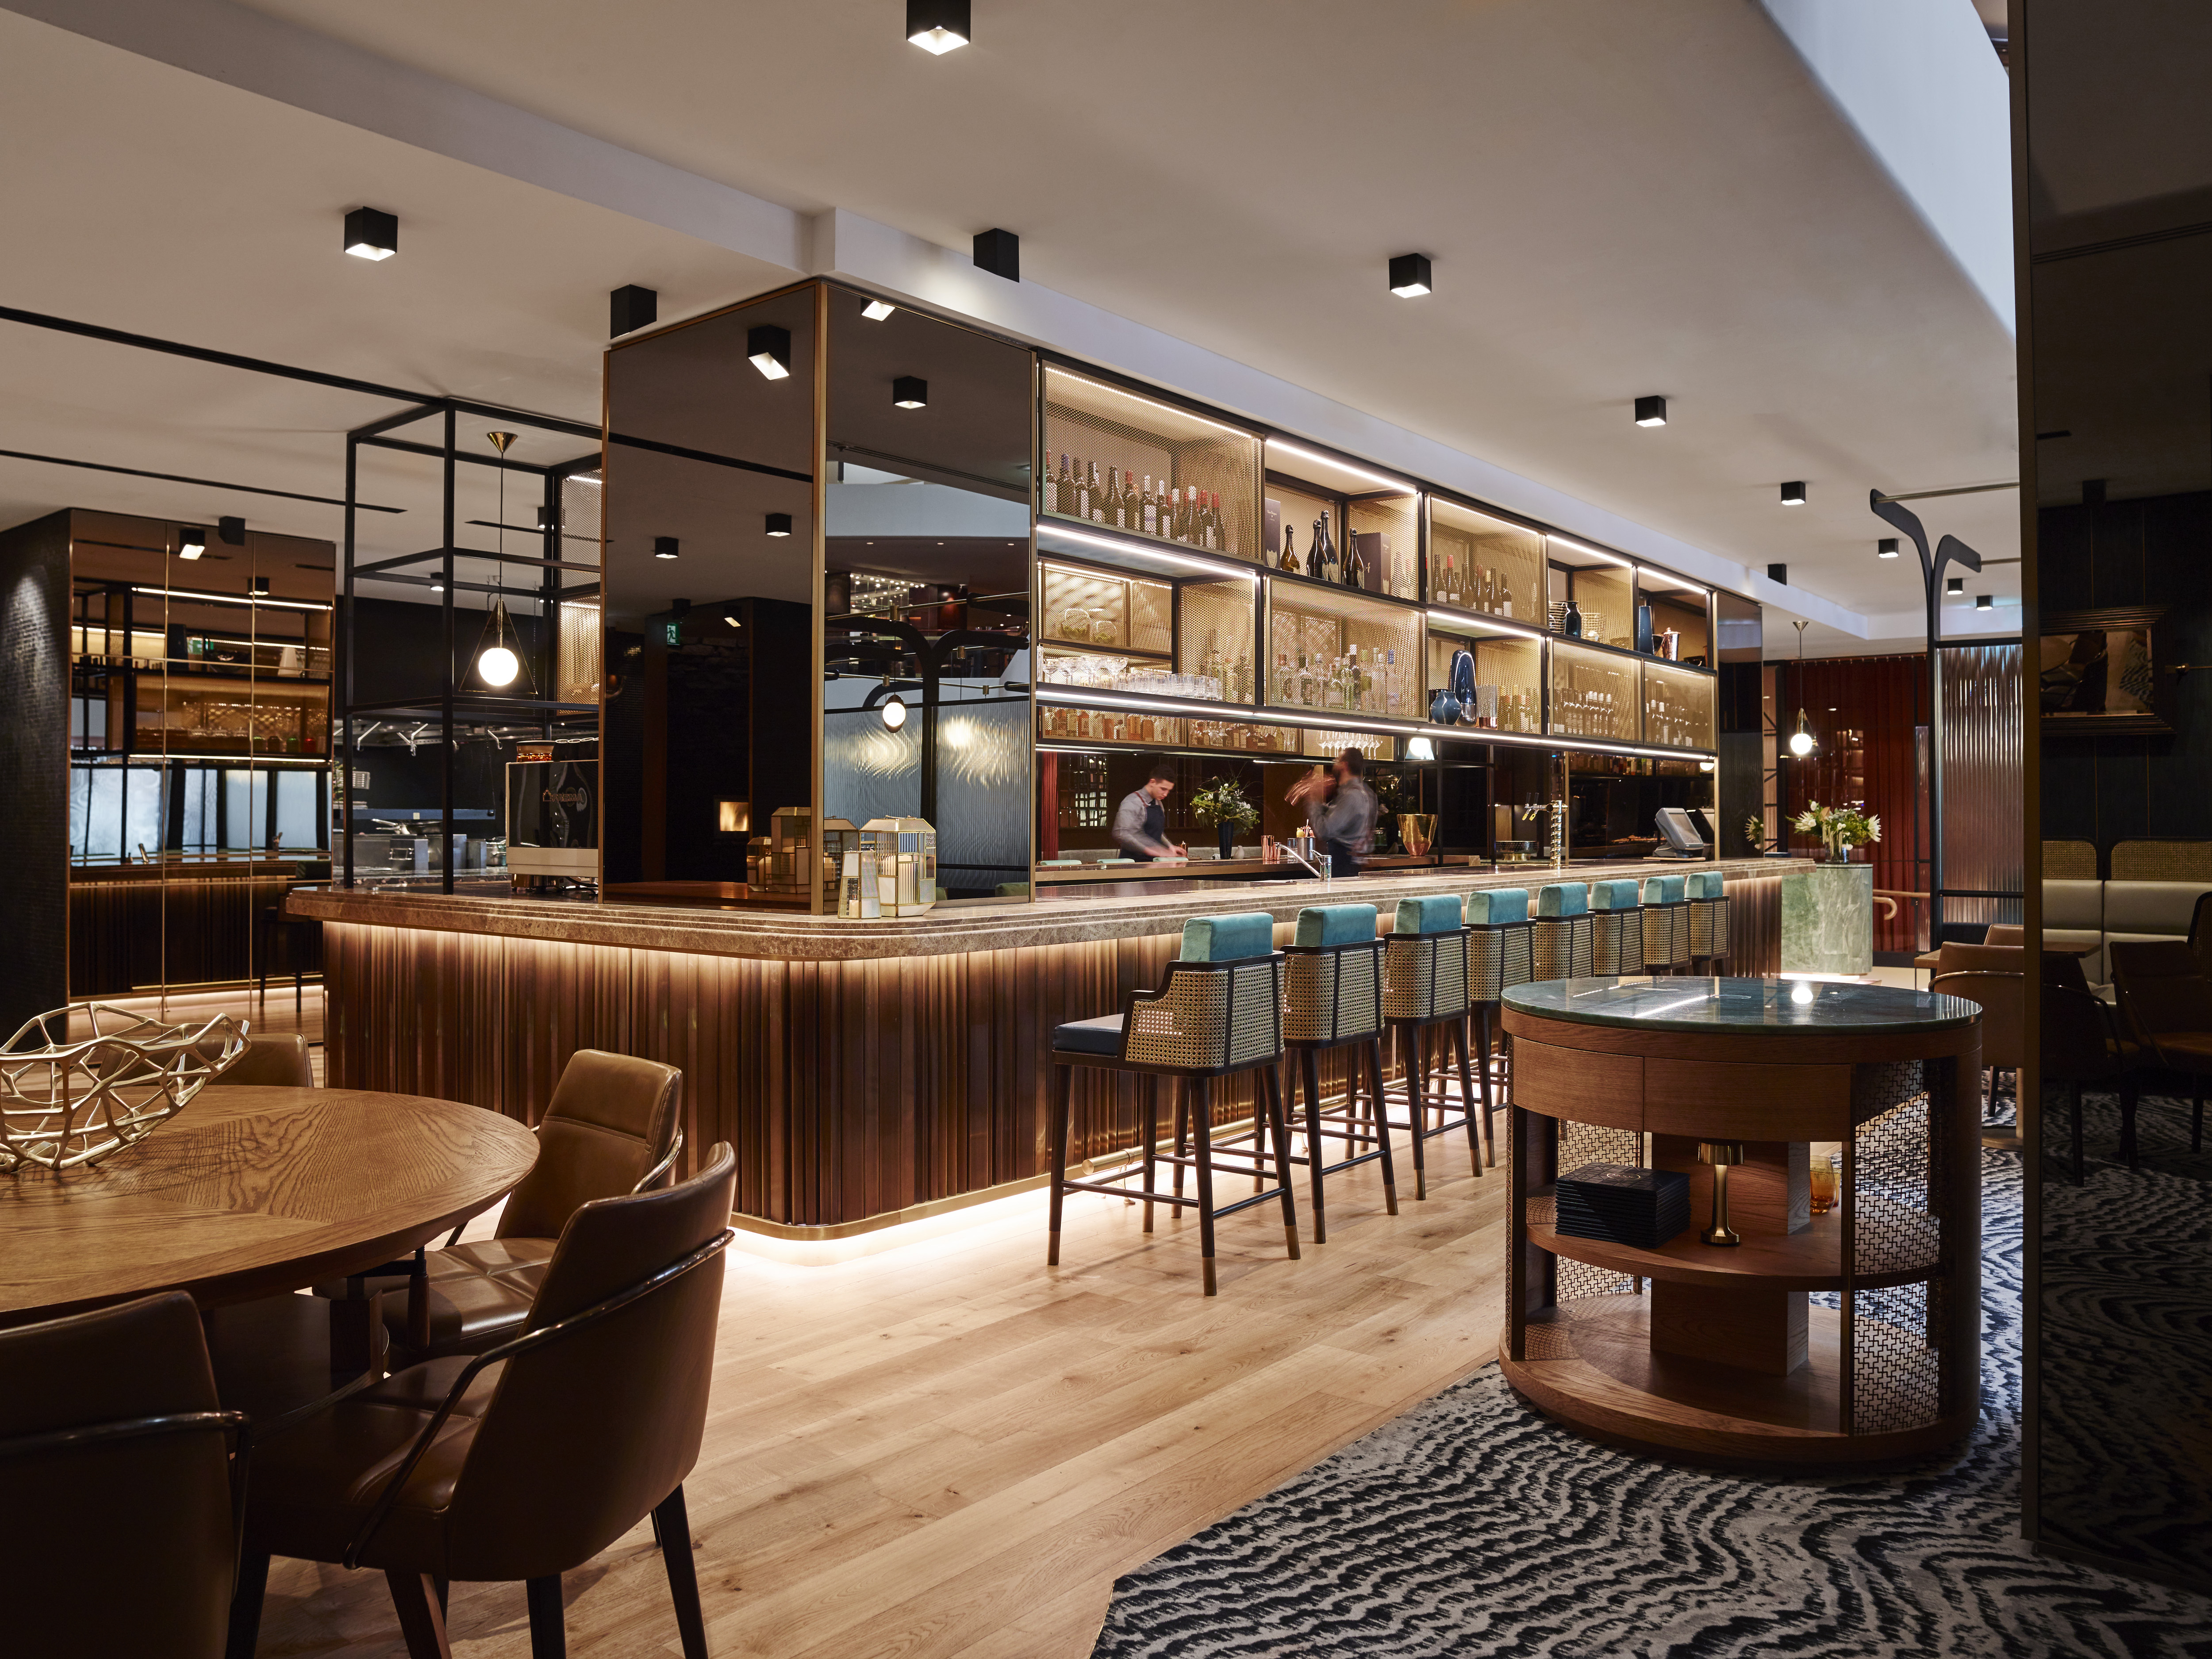 commercial kitchen design sydney mode kitchen amp bar sydney menus reviews bookings dimmi 291